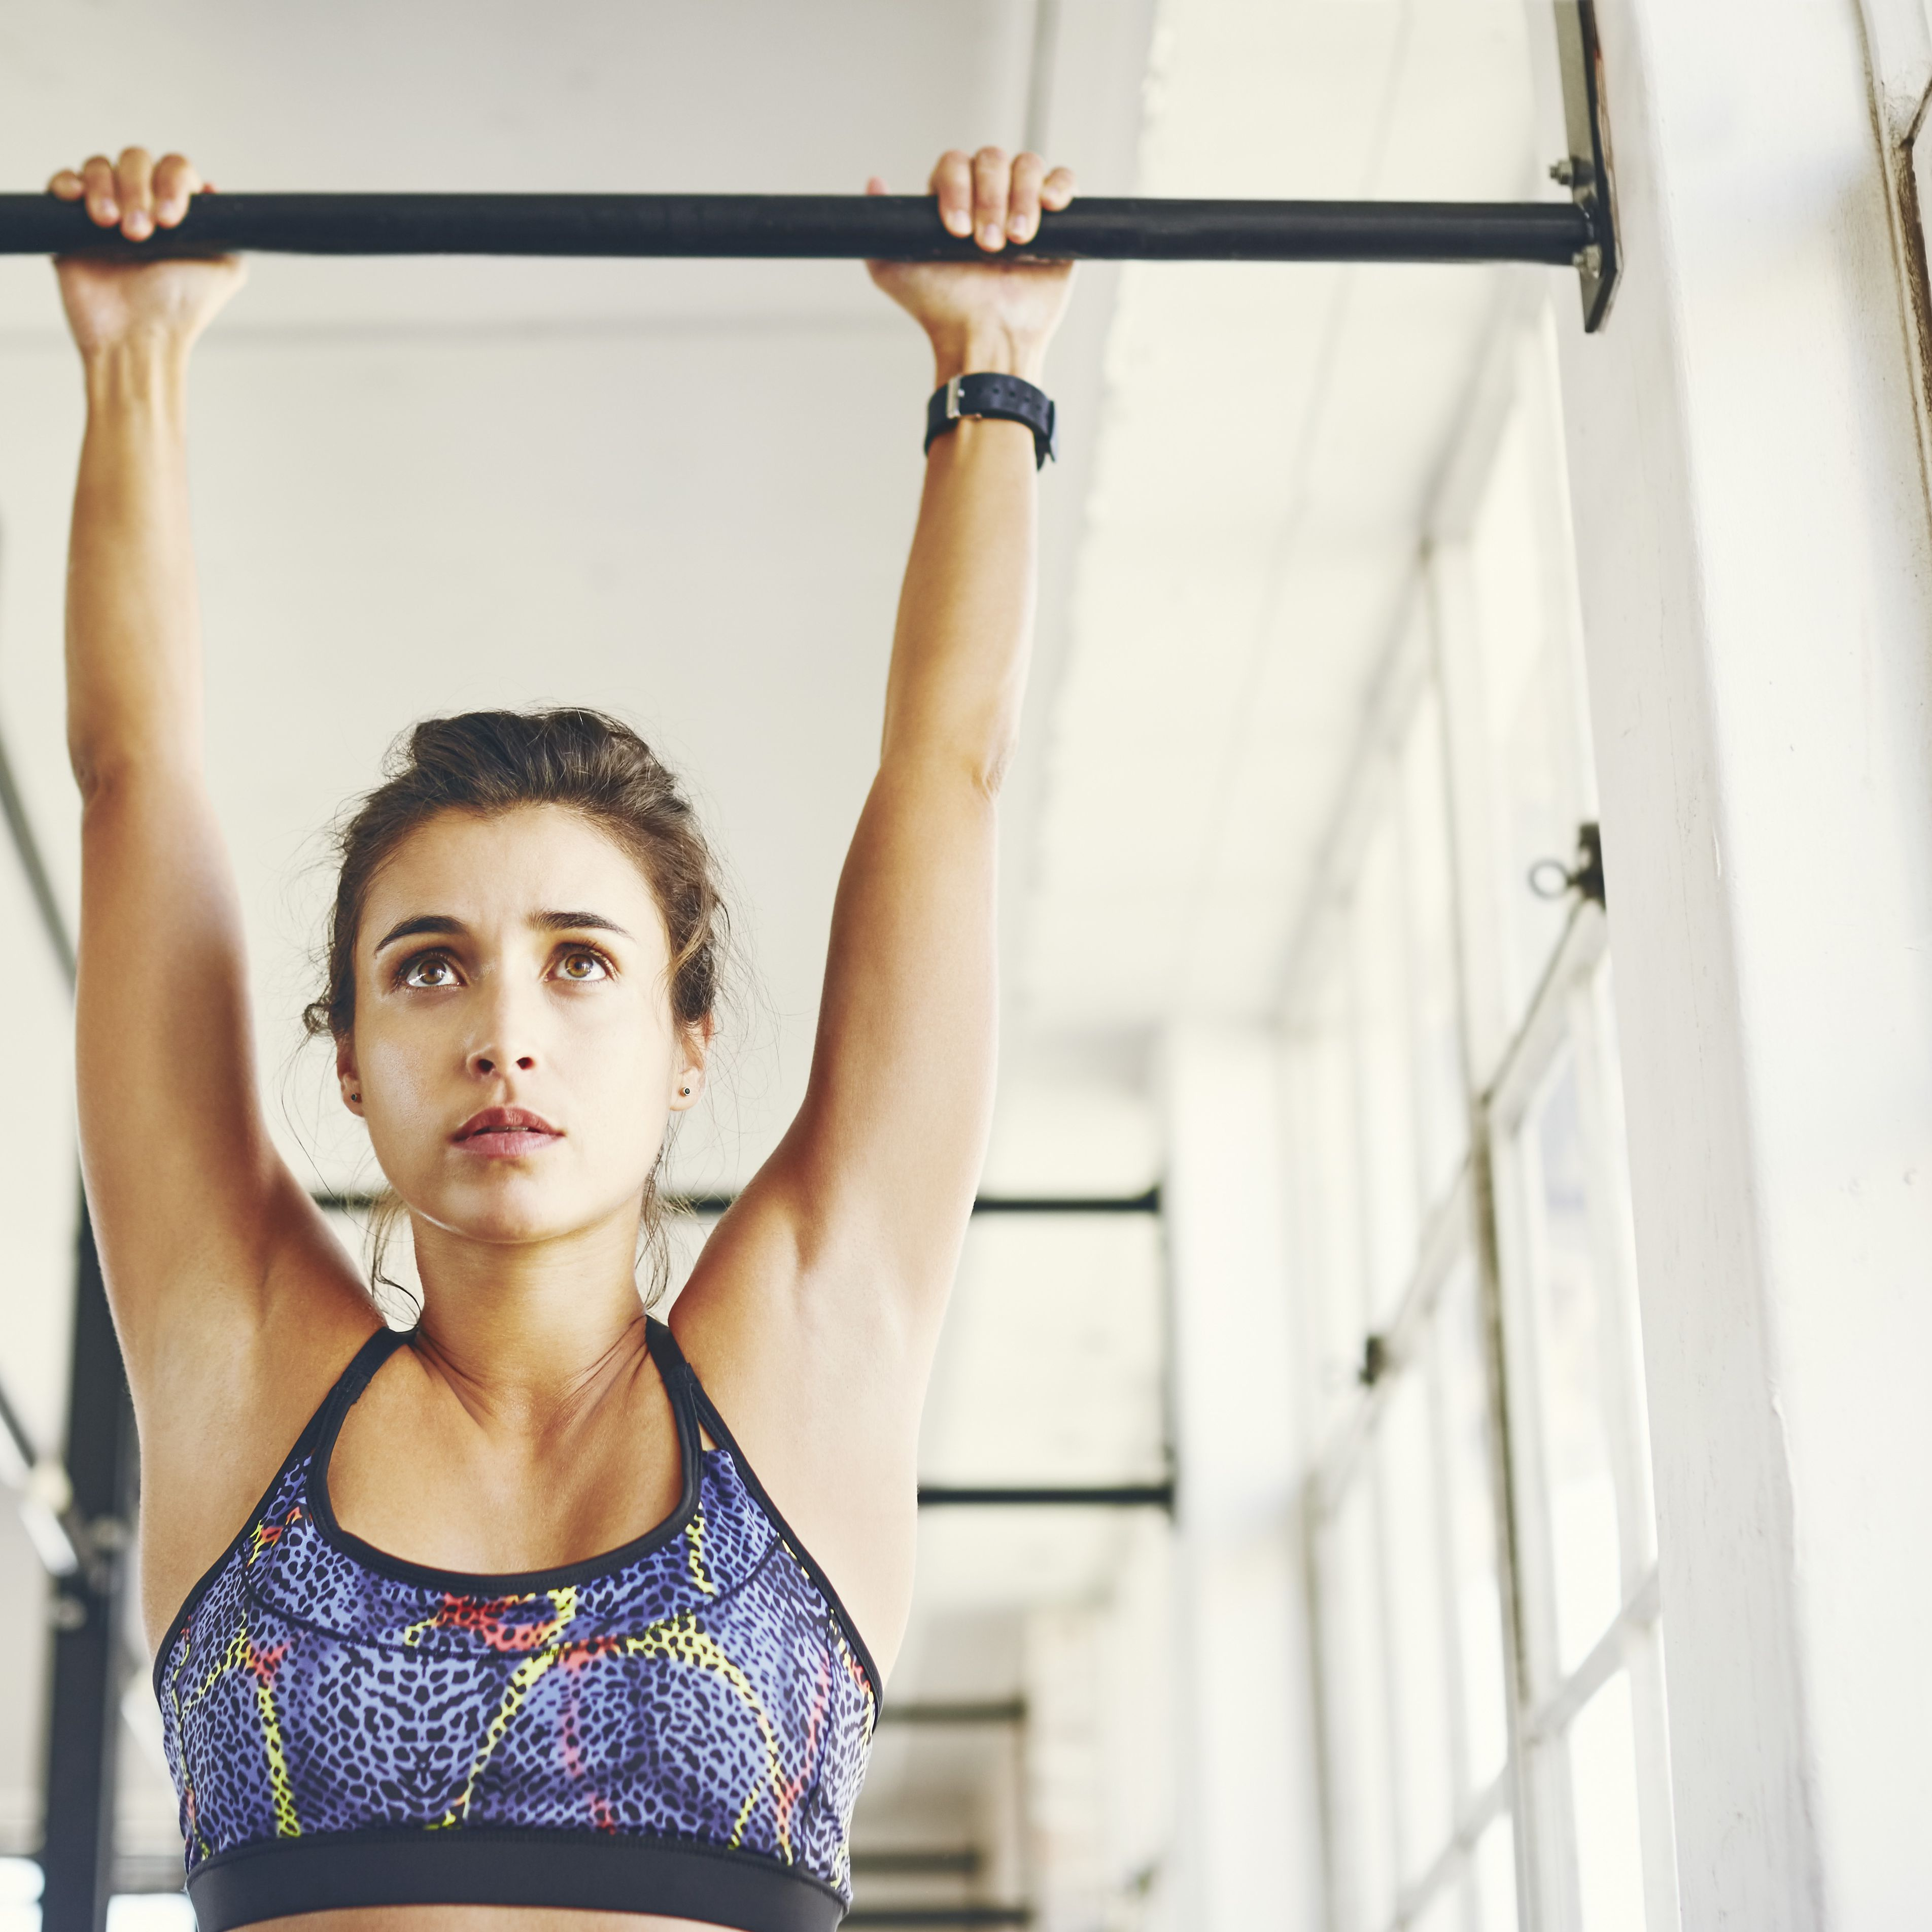 The Cindy WOD: Scoring, Tips, and Safety